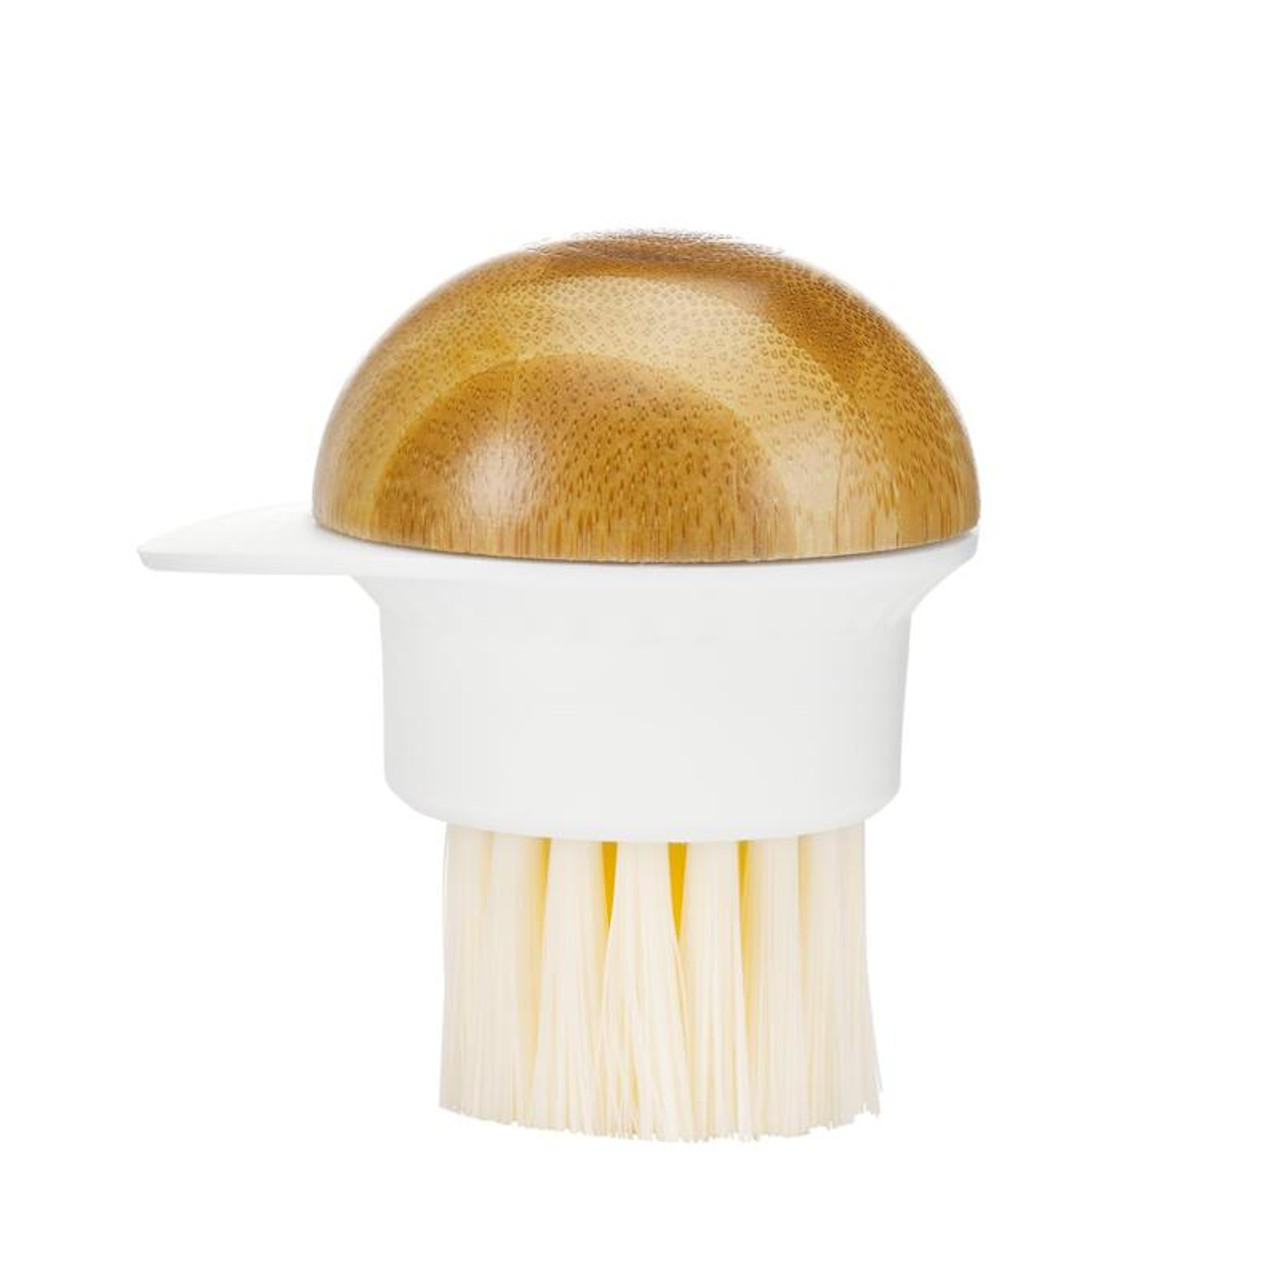 FULL CIRCLE FUN GUY 2-in-1 MUSHROOM CLEANING BRUSH